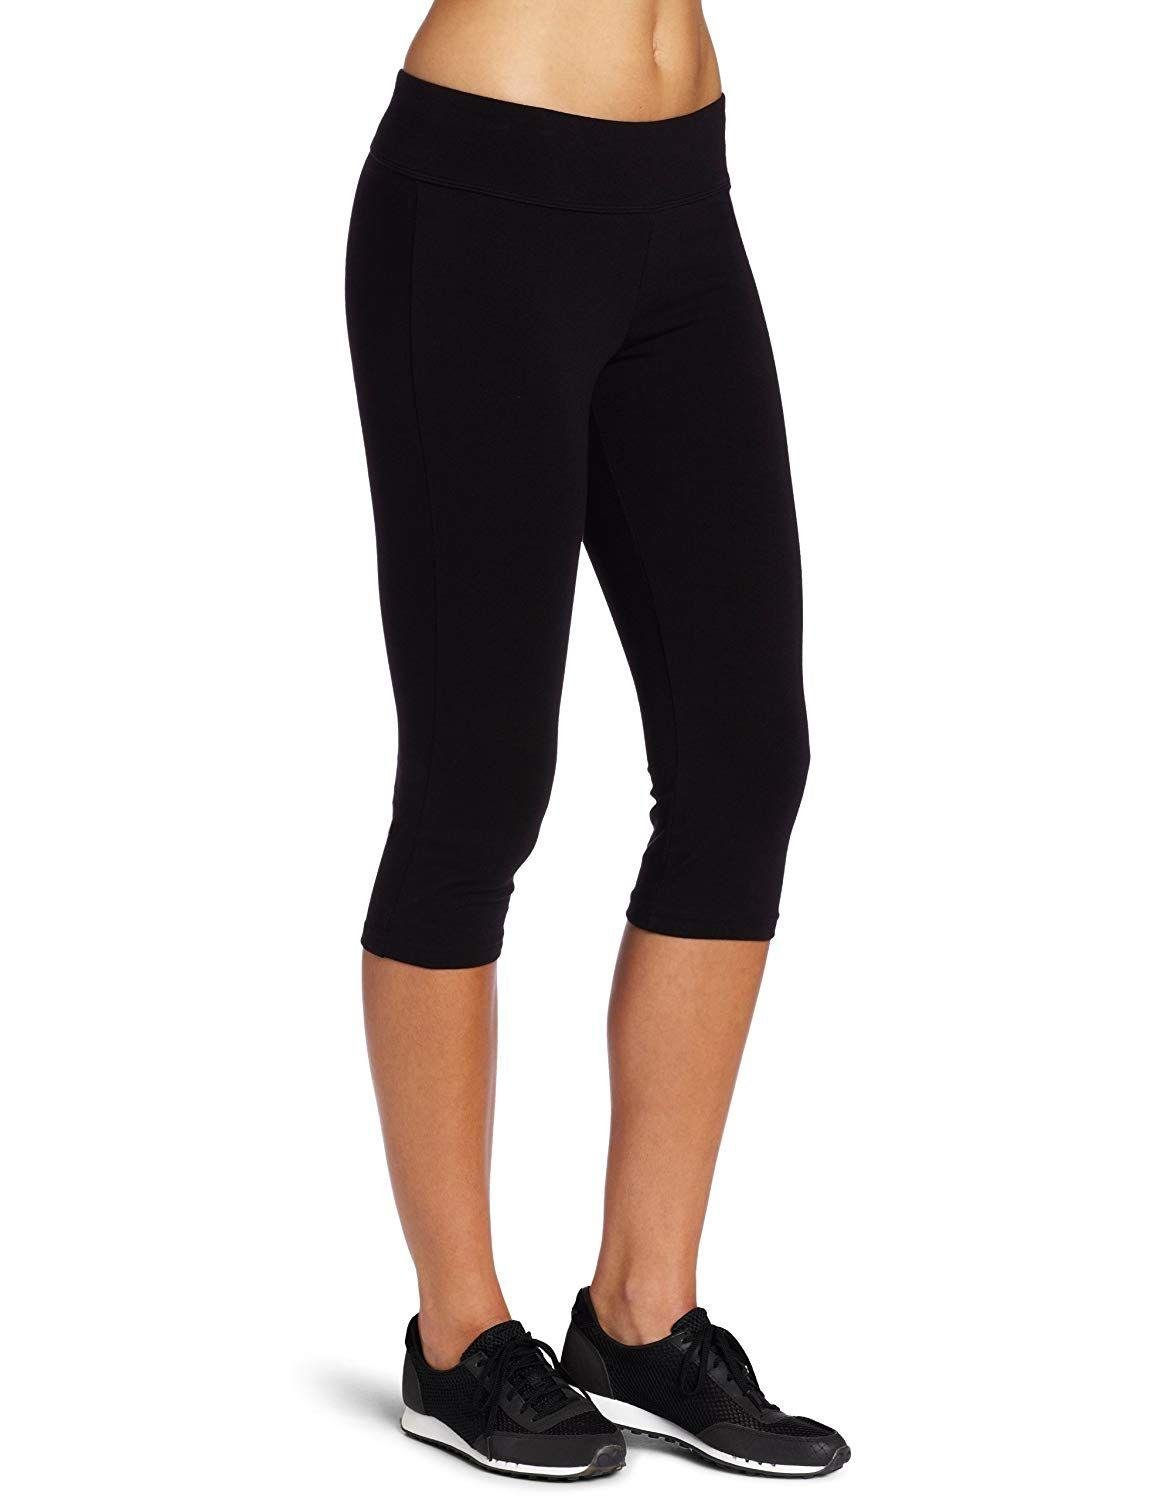 """<h3><a href=""""https://www.amazon.com/Spalding-Womens-Capri-Legging-X-Large/dp/B005GYGEWS"""" rel=""""nofollow noopener"""" target=""""_blank"""" data-ylk=""""slk:Spalding Essential Capri Legging"""" class=""""link rapid-noclick-resp"""">Spalding Essential Capri Legging</a></h3> <p>4.3 out of 5 stars and 4,914 reviews</p> <p><strong>Promising Review:</strong> If you <em>are</em> shopping for a pair of proper workout leggings, then J. Gorman thinks these are the bottoms for you. In an update to their review titled """"<a href=""""https://www.amazon.com/gp/customer-reviews/RJY9AABFCXI3U"""" rel=""""nofollow noopener"""" target=""""_blank"""" data-ylk=""""slk:Solid workout pants for HIIT exercising"""" class=""""link rapid-noclick-resp"""">Solid workout pants for HIIT exercising</a> """" they wrote, """"While there was pilling of fabric early on in the thigh area where it rubs, I have to say over the months they've held up...and I wear/wash them up to two times a week... Note, my workout is a kickboxing HIIT type of workout, I only rarely wear these on a run, and the only walking I do in them is to and from the gym some days, so for the type of workout I do, I'm very satisfied with the fit and the durability.""""</p> <br> <br> <strong>Spalding</strong> Essential Capri Legging, $10.18, available at <a href=""""https://www.amazon.com/Spalding-Womens-Capri-Legging-X-Large/dp/B005GYGEWS"""" rel=""""nofollow noopener"""" target=""""_blank"""" data-ylk=""""slk:Amazon"""" class=""""link rapid-noclick-resp"""">Amazon</a>"""